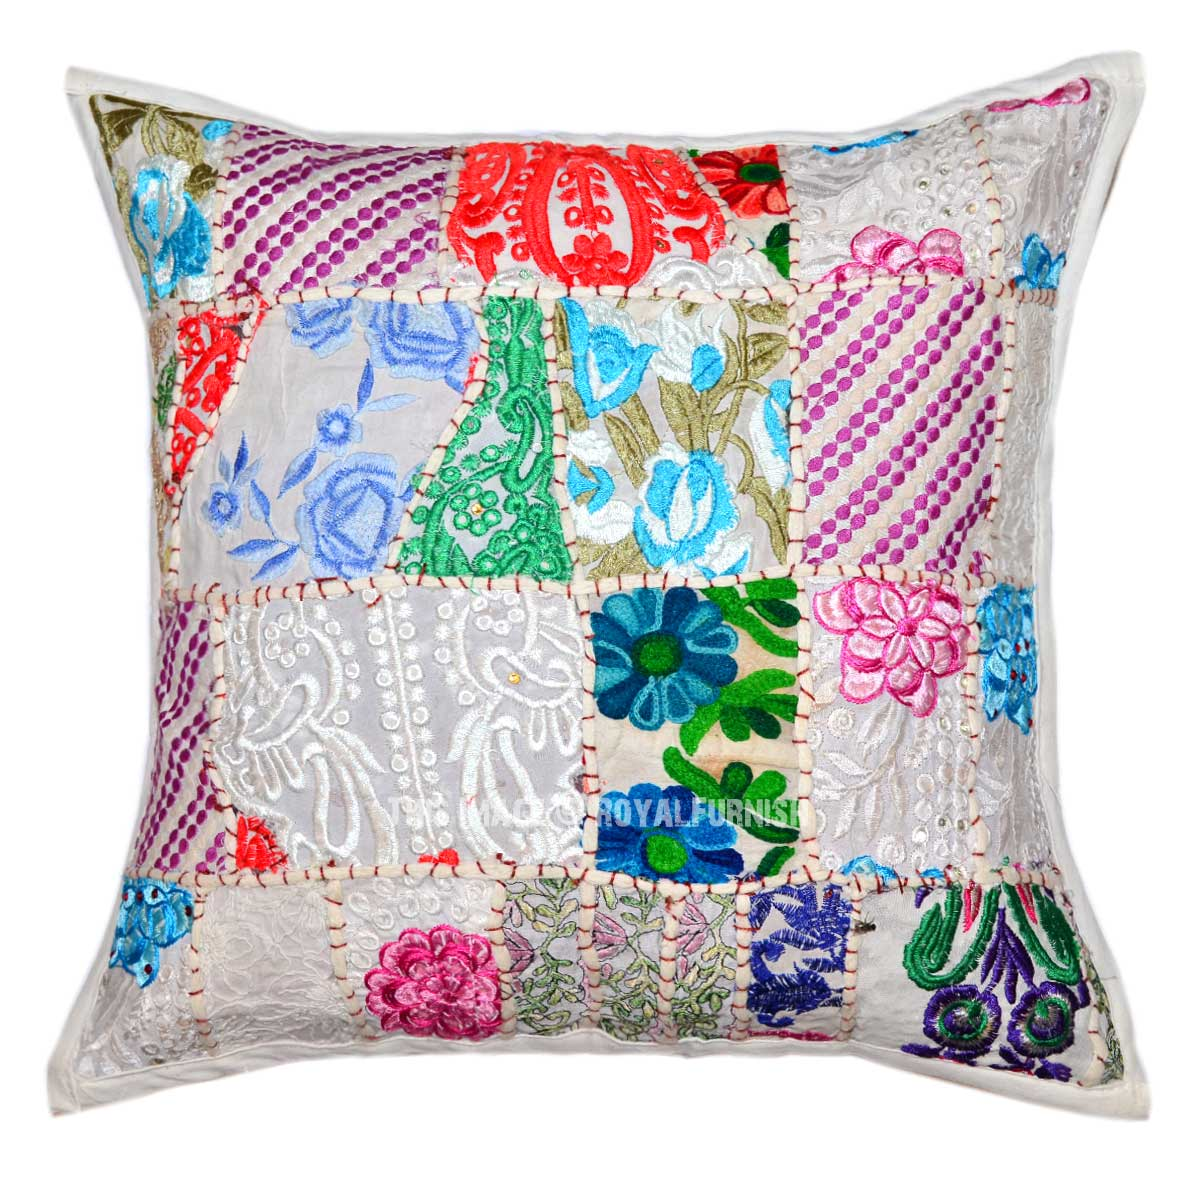 16x16 white multi patchwork embroidered boho throw pillow cover. Black Bedroom Furniture Sets. Home Design Ideas